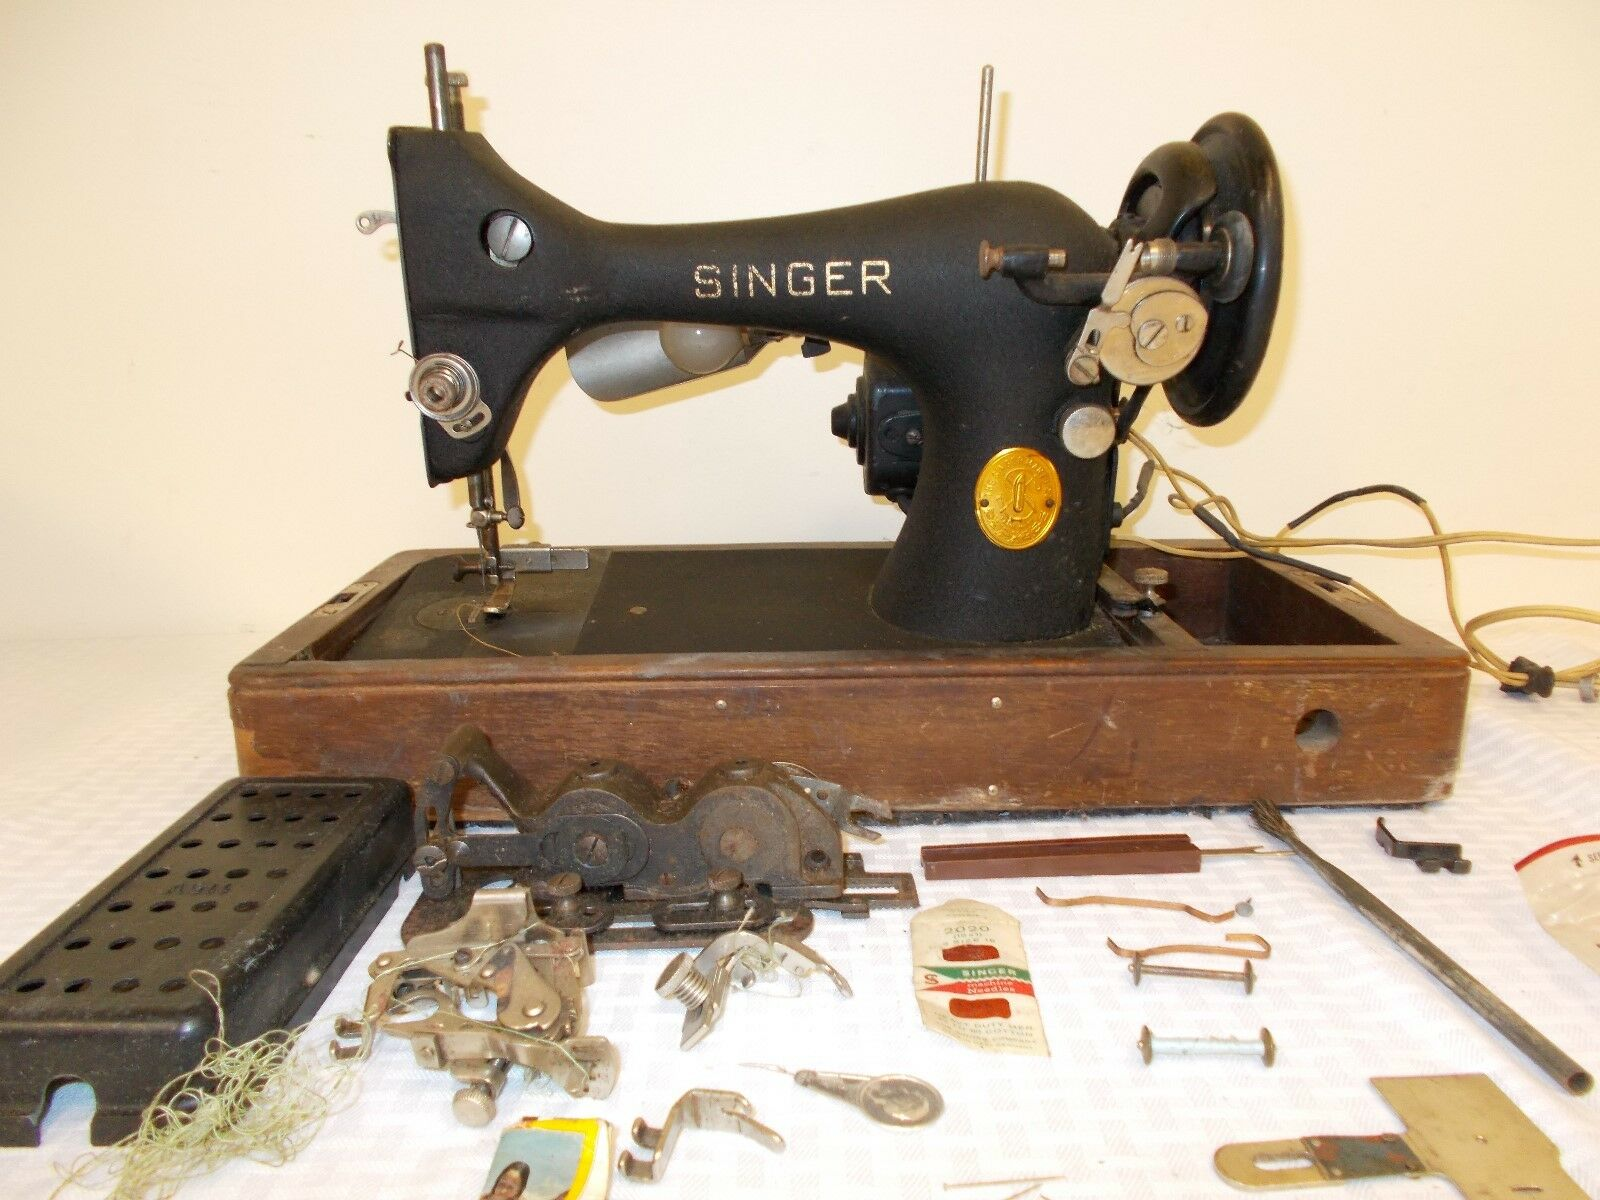 Singer Sewing Machine 1941 Vintage Model 128 Electric Bobbinbox Necchi Bu Threading Diagram 1 Of 6 See More